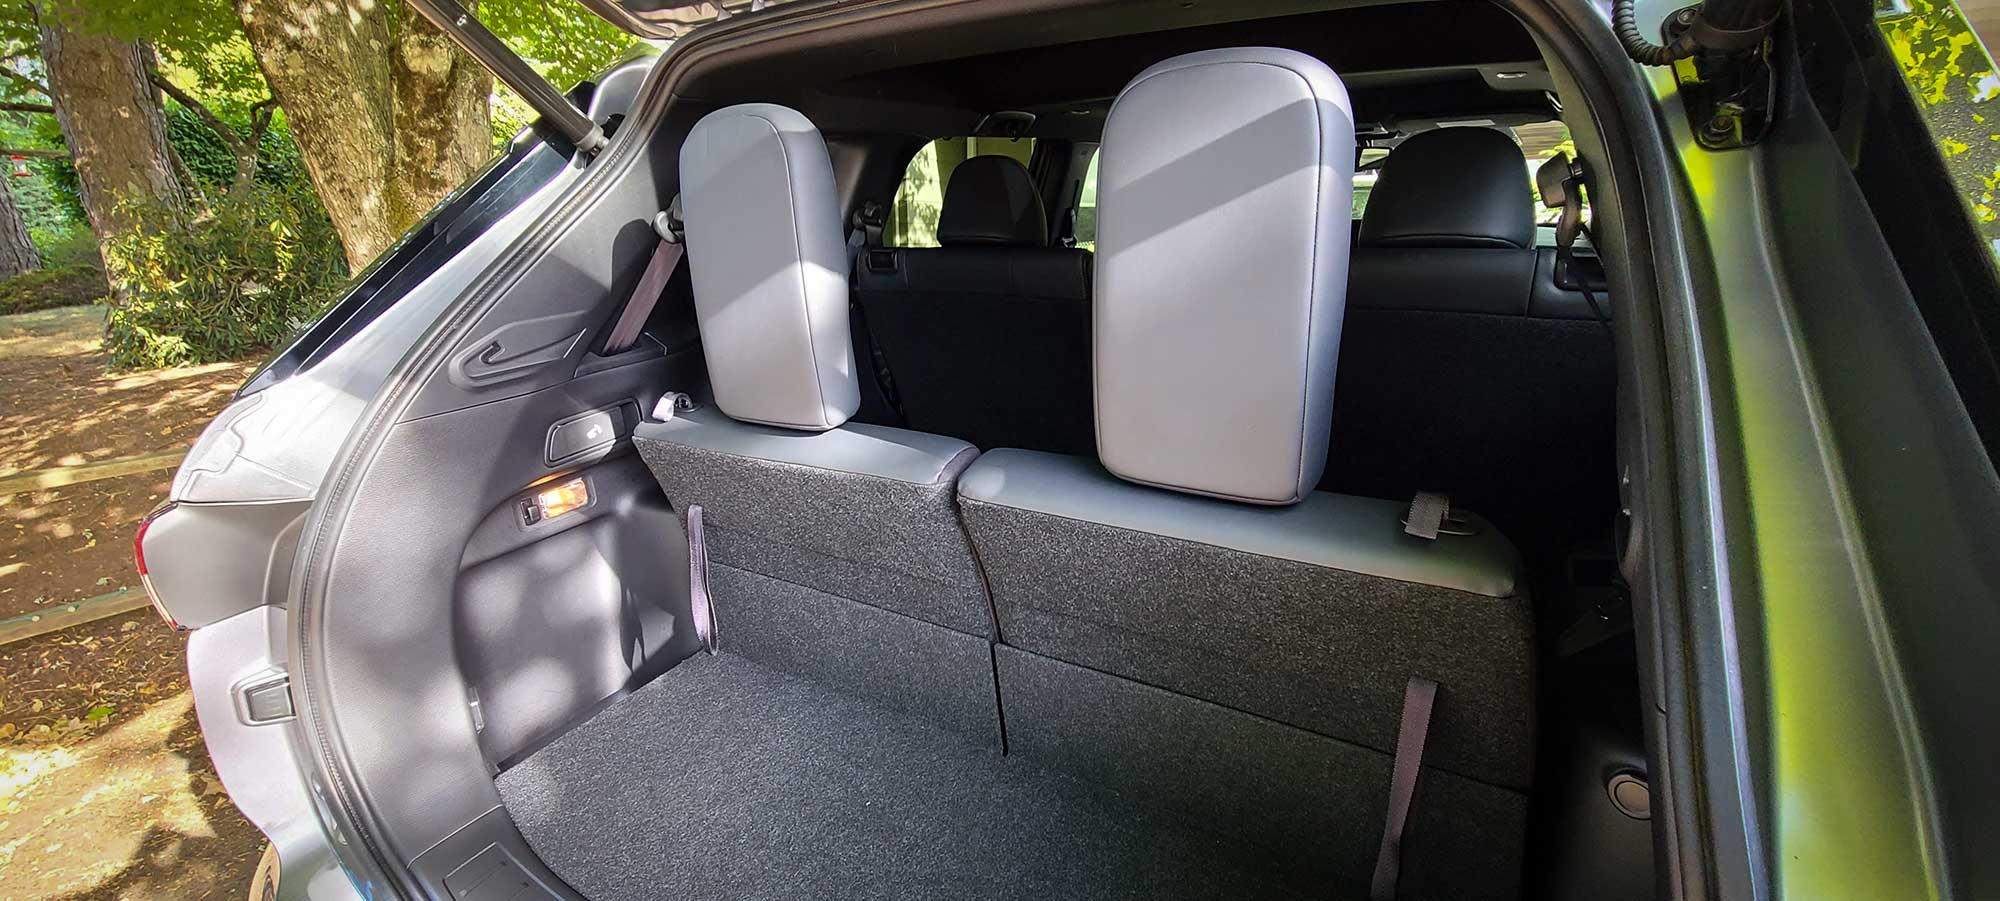 The 2022 Mitsubishi Outlander offers three rows of seating